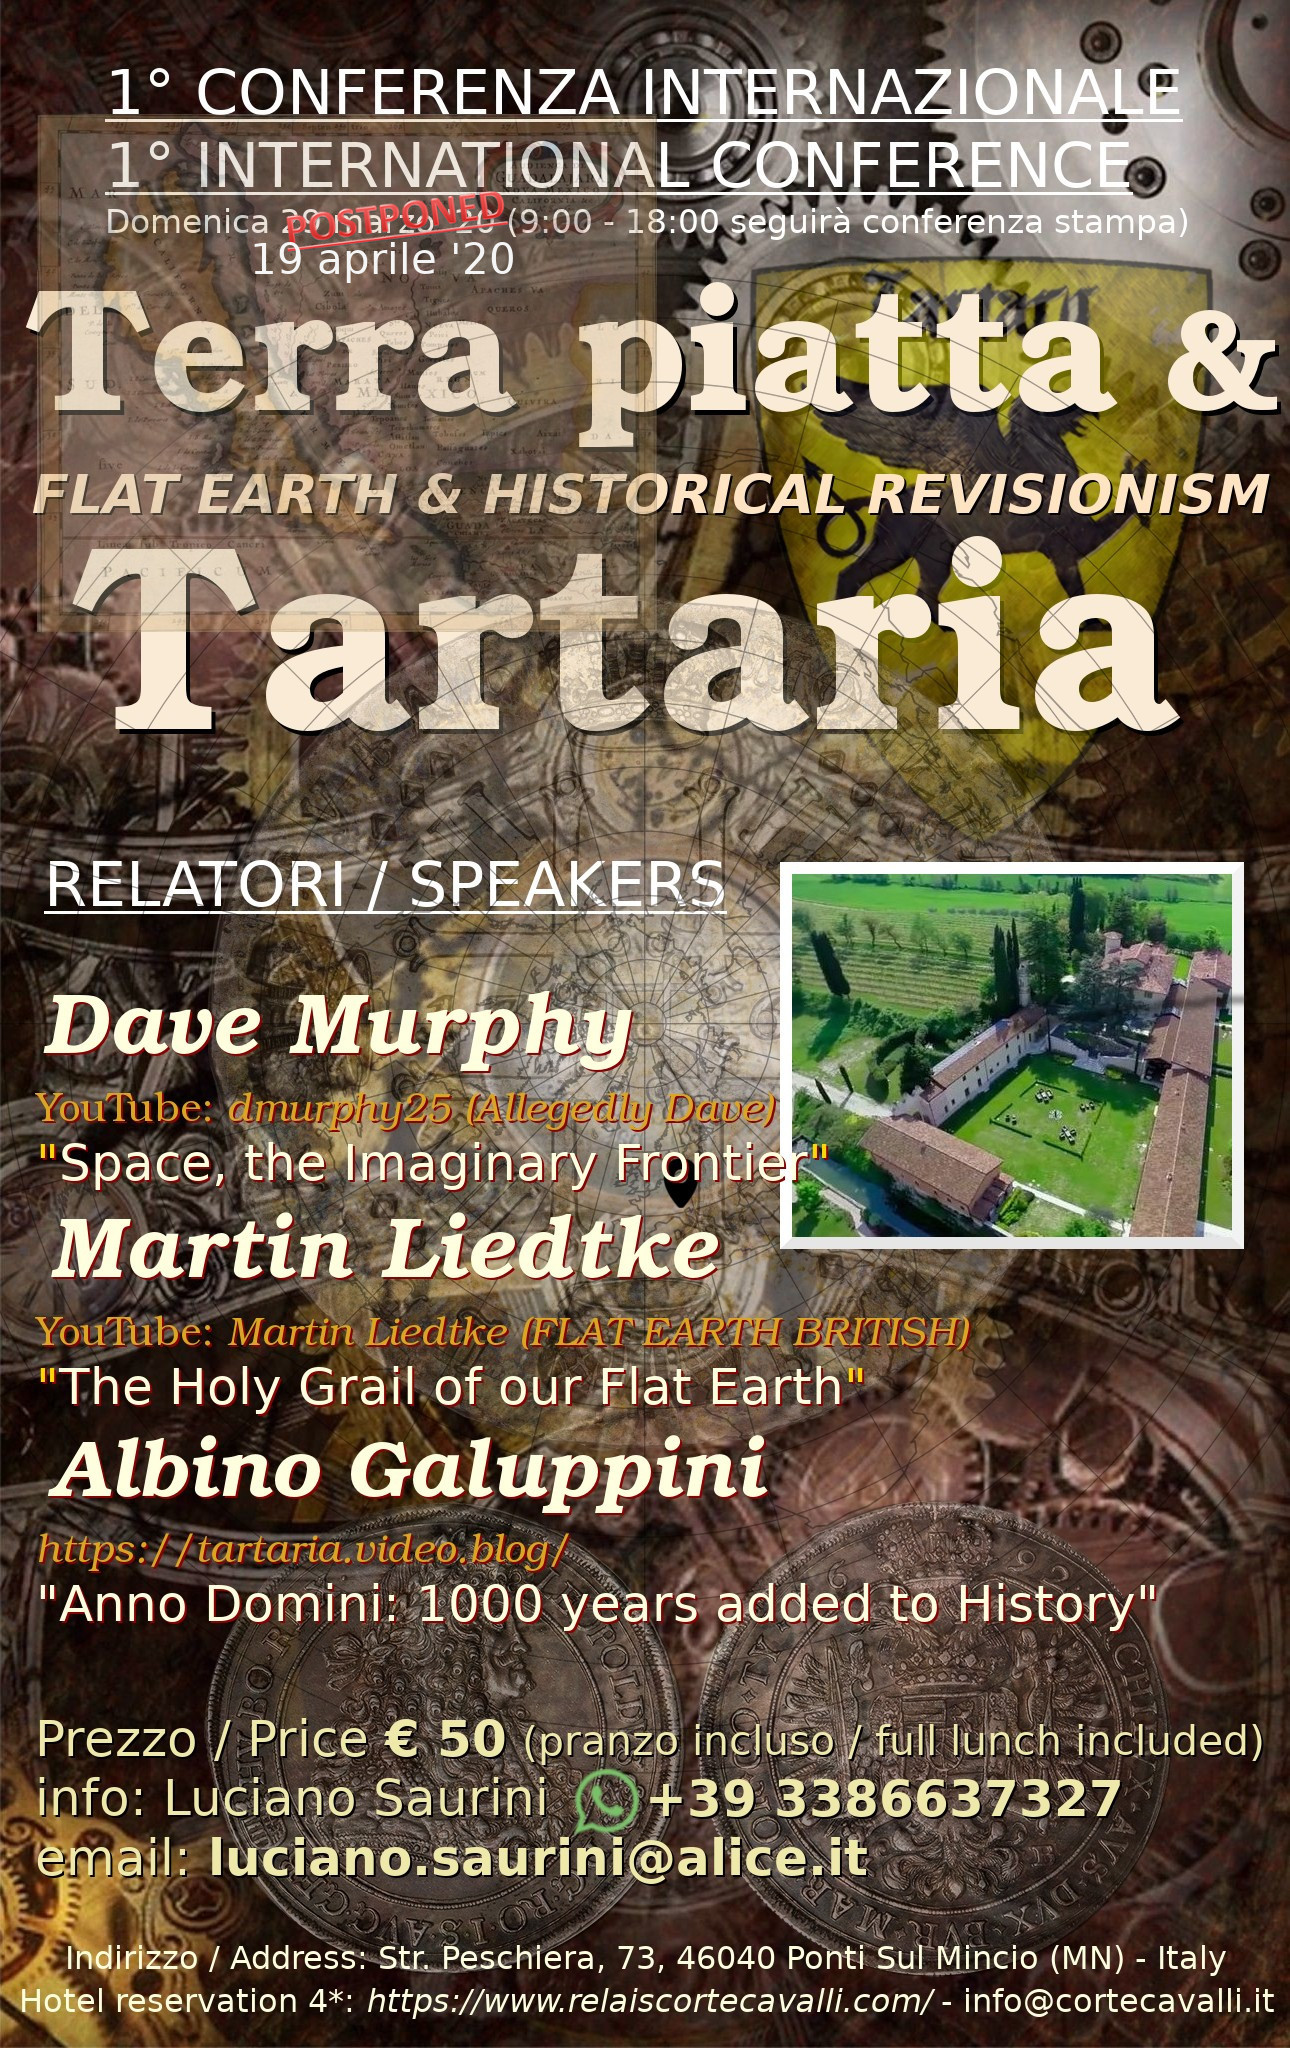 International Flat Earth and Tartaria conference -19 aprile 2020